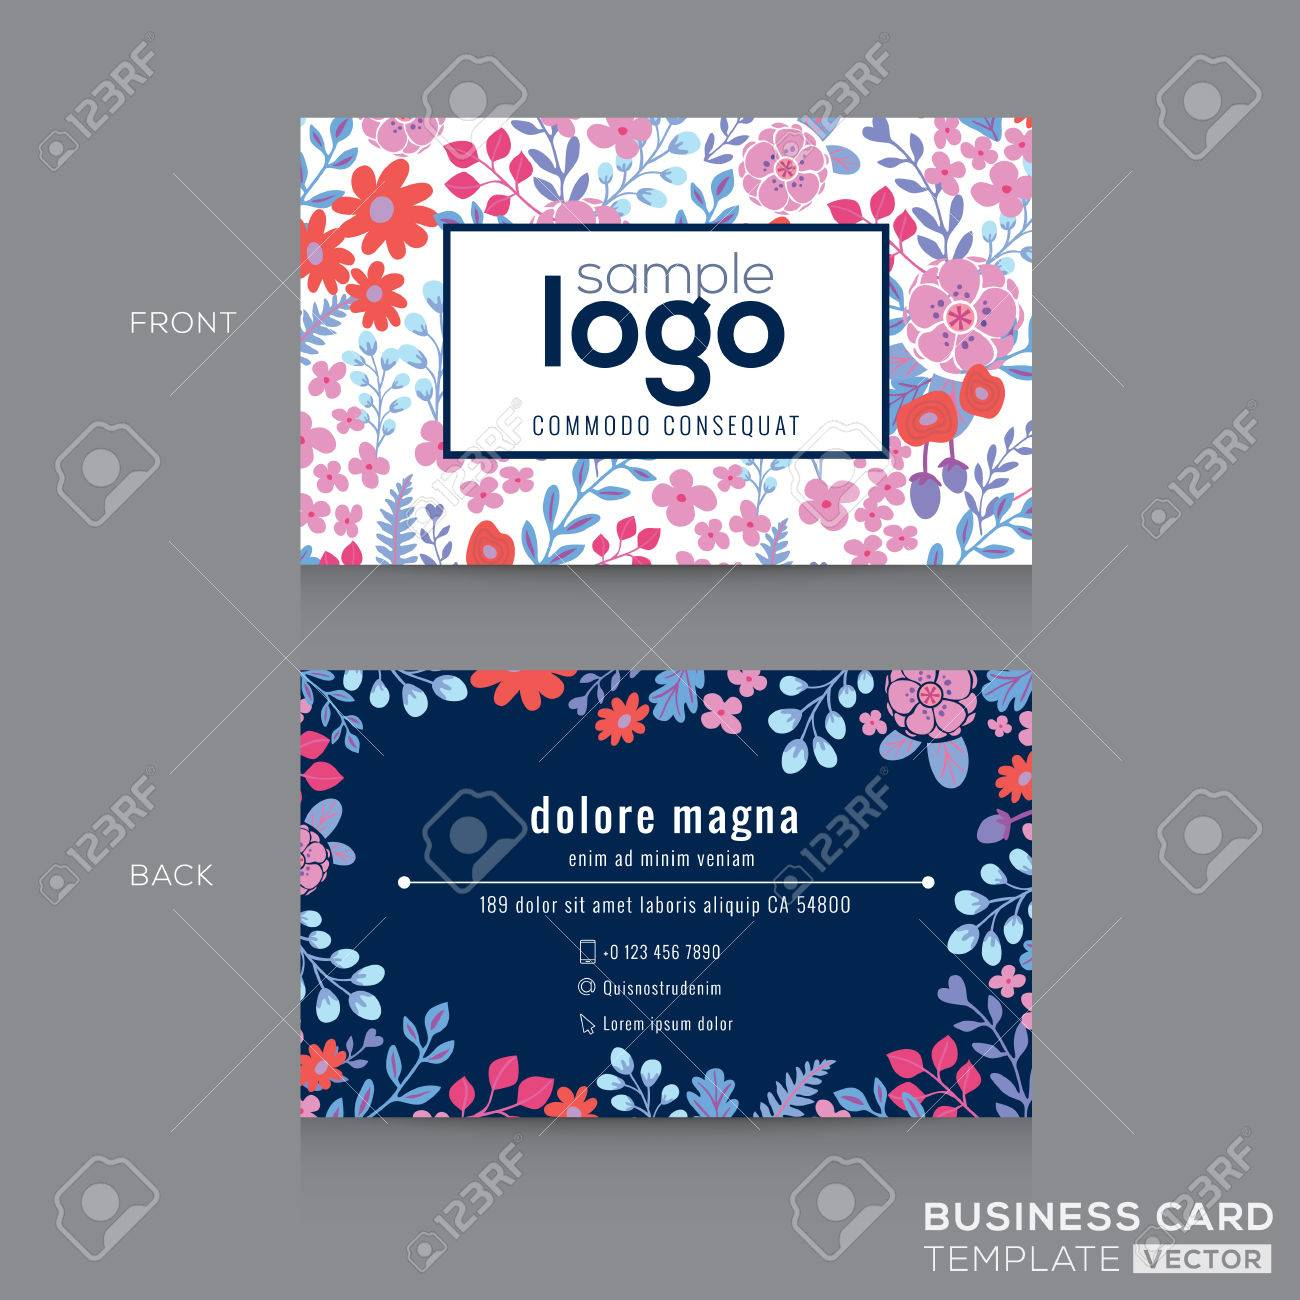 Free business card floral design image collections card design and cute floral pattern business card name card design template royalty cute floral pattern business card name cheaphphosting Choice Image